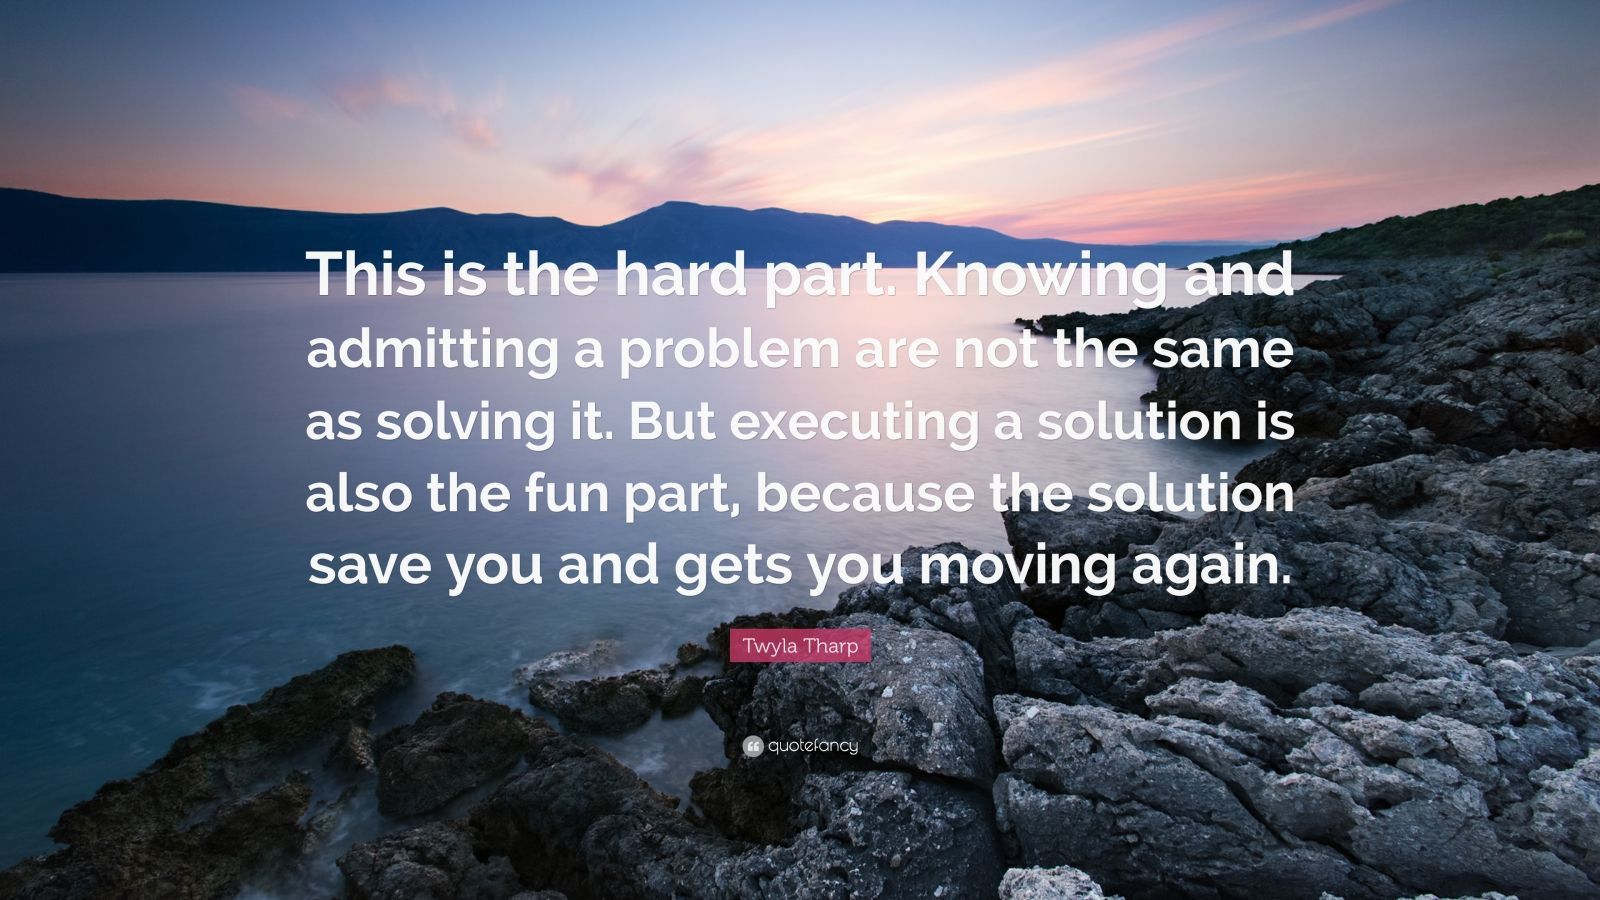 """Twyla Tharp Quote: """"This is the hard part. Knowing and admitting a problem are not the same as solving it. But executing a solution is also the fun part, because the solution save you and gets you moving again."""""""